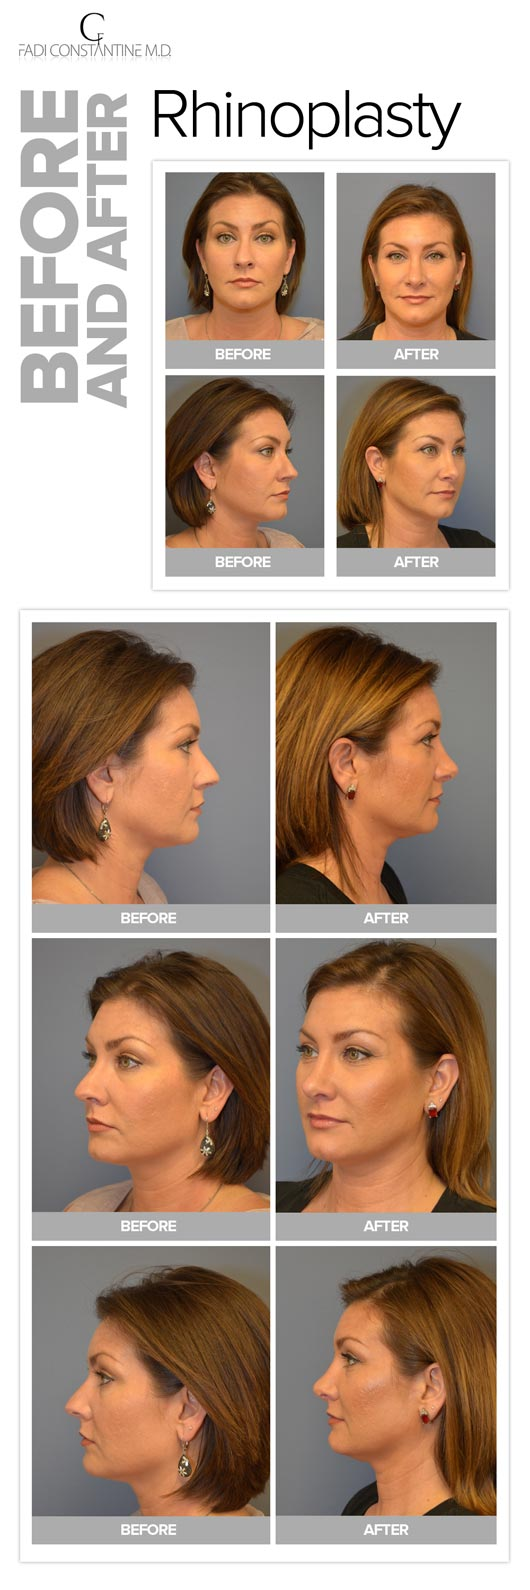 rhinoplasty-dallas-fadi-constantine-md-patient1